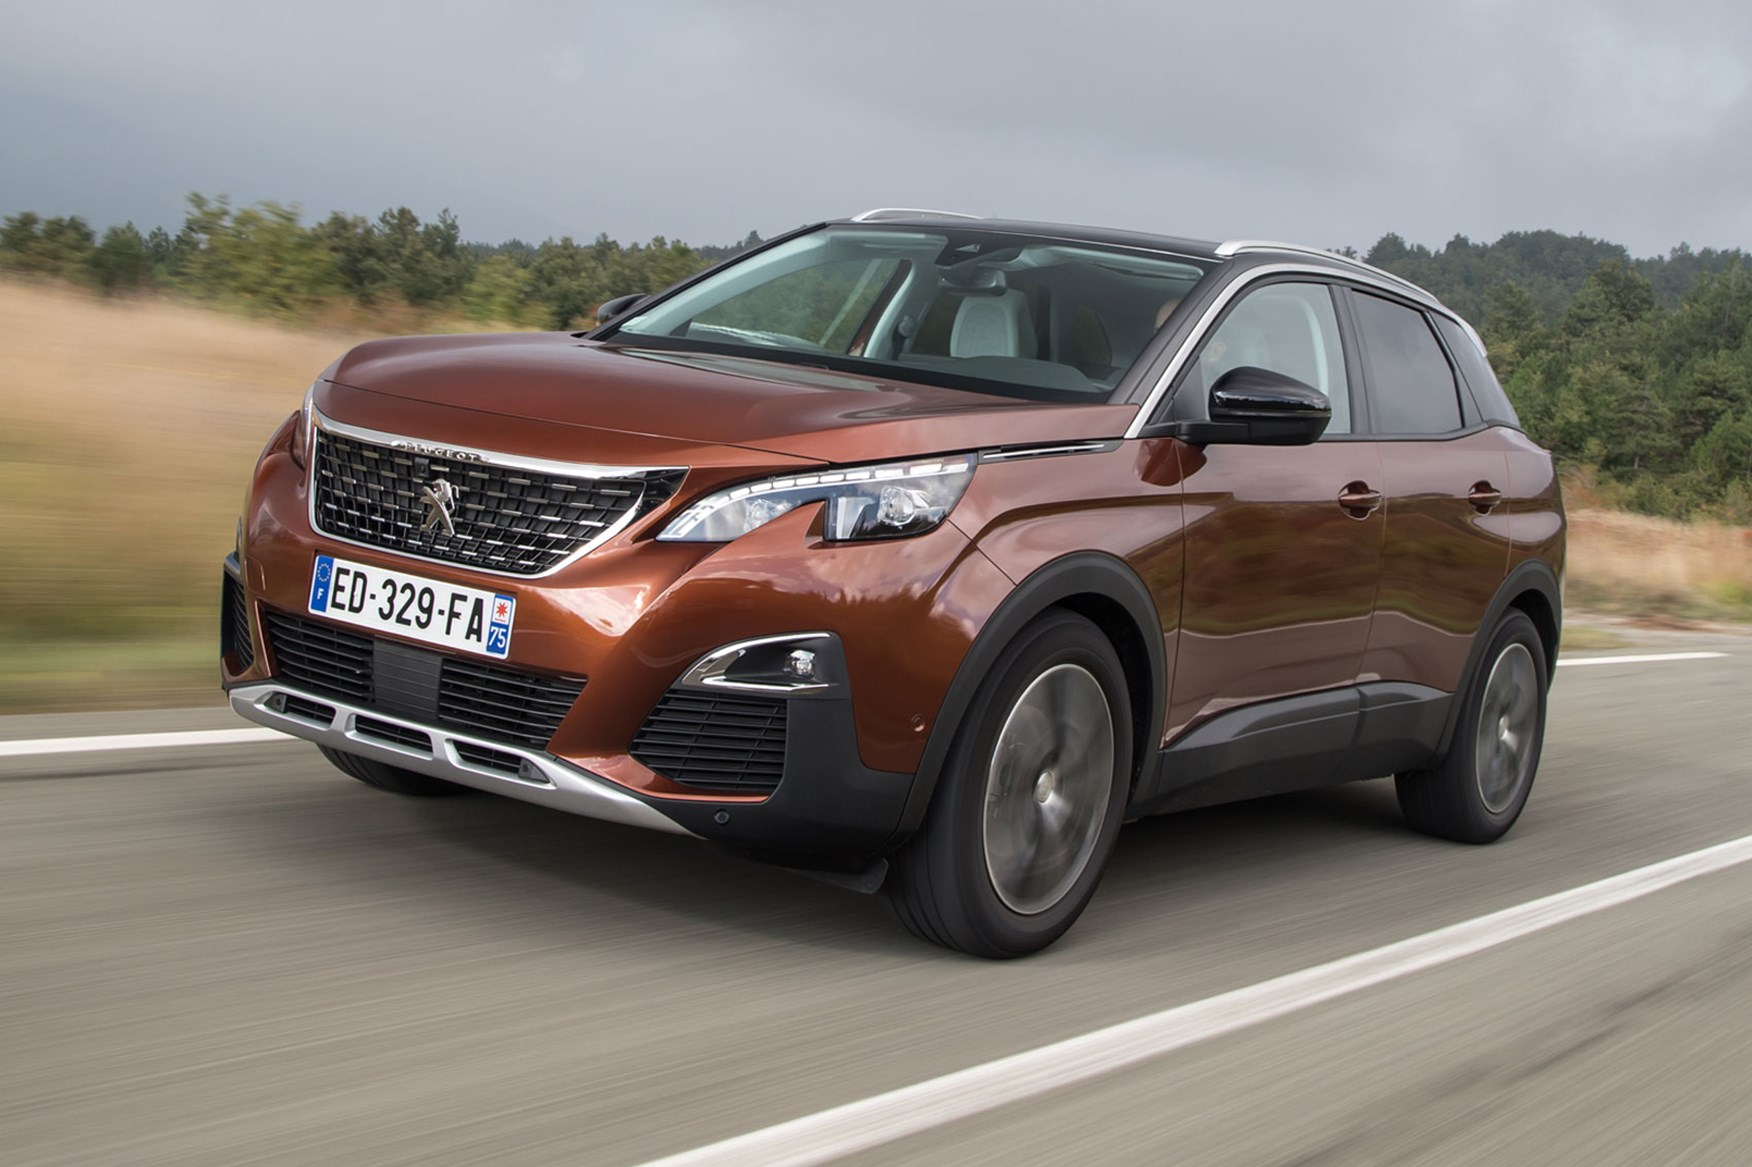 Cars For Sale Los Angeles >> Peugeot 3008 1.6 BlueHDi 120 S&S Allure (2016) review by CAR Magazine